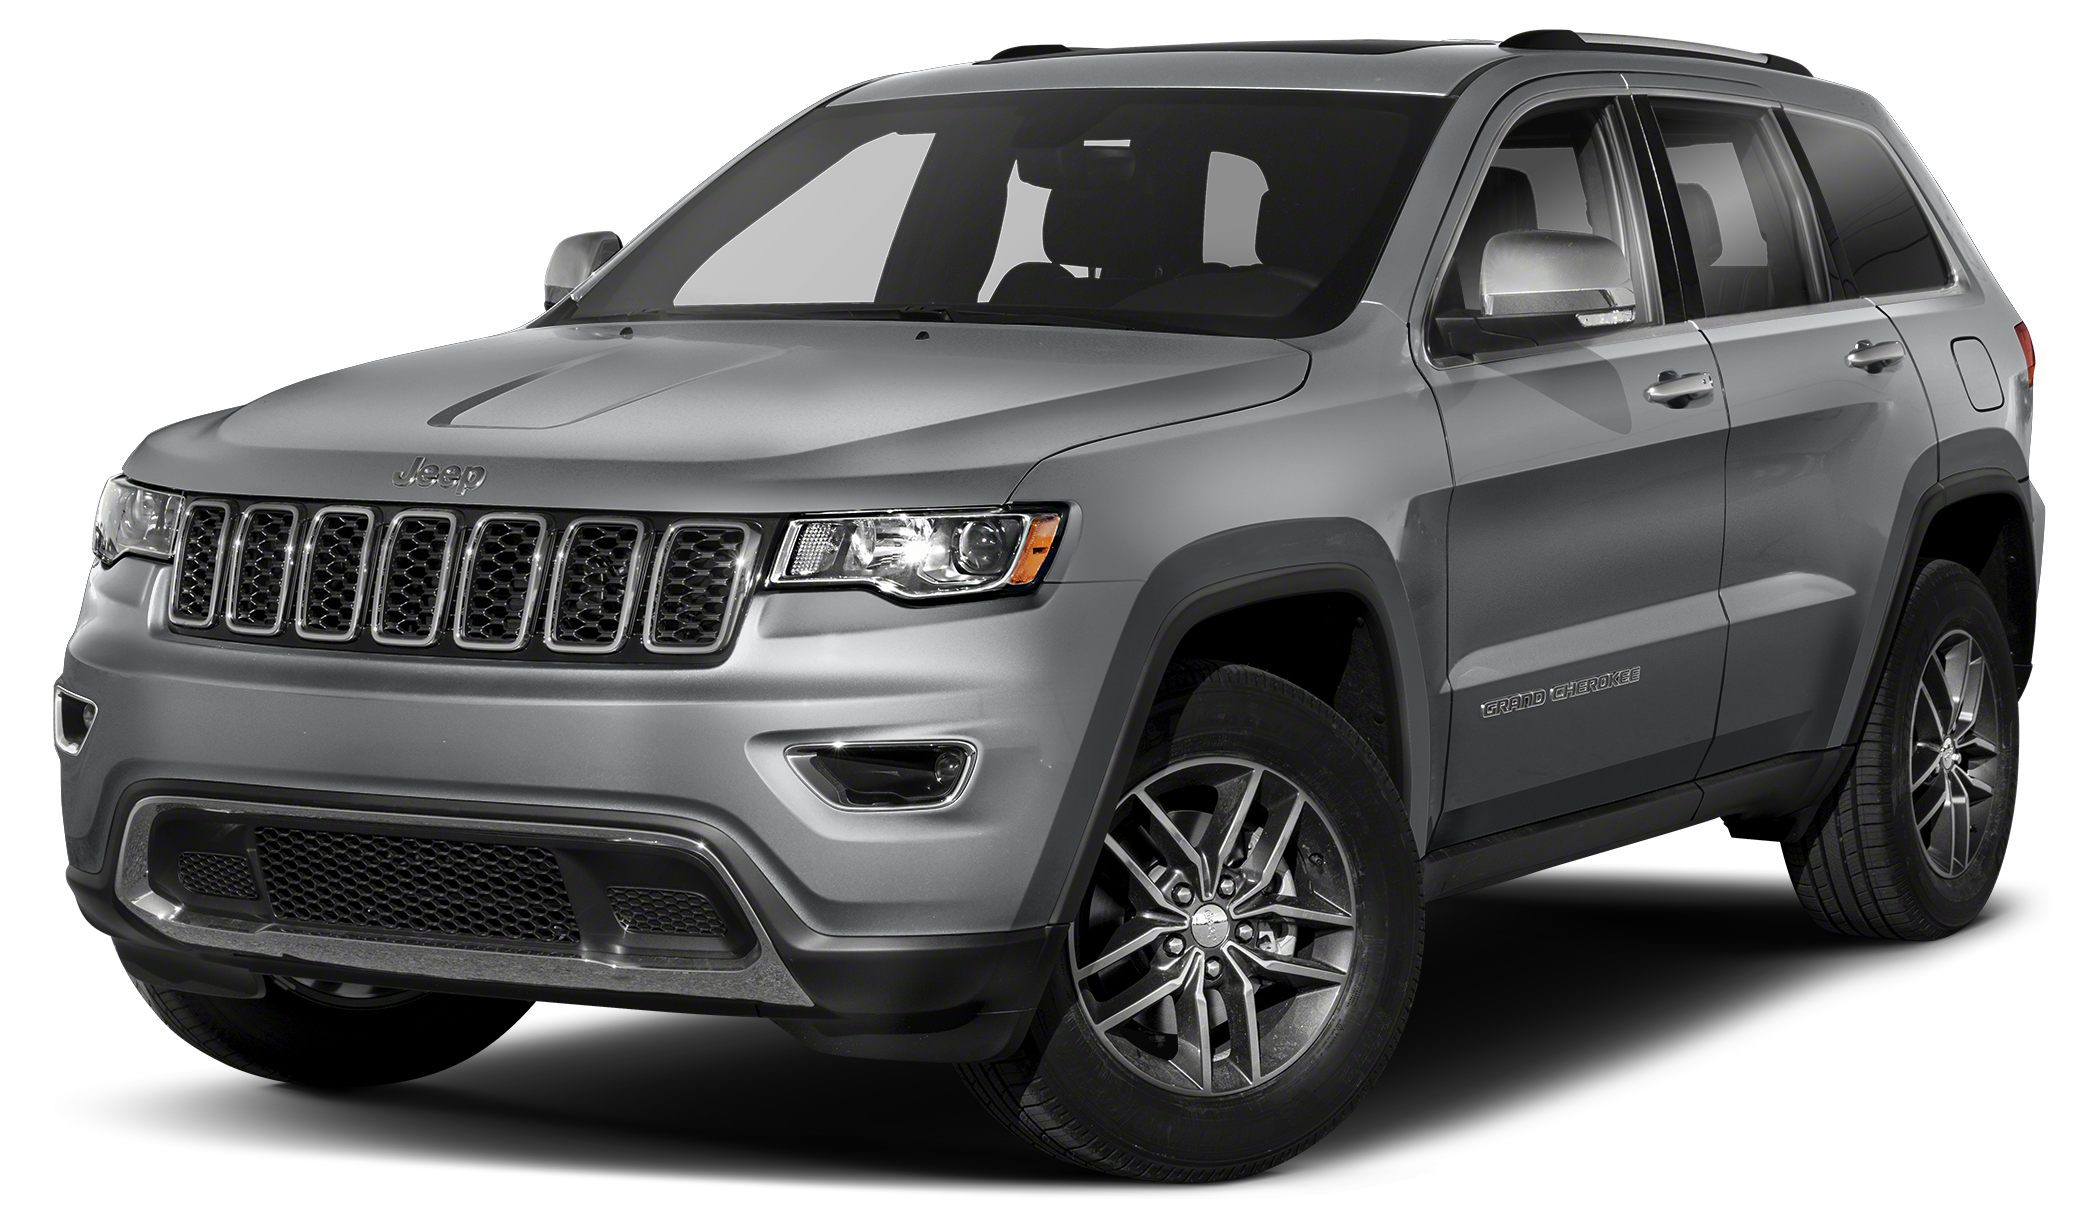 2017 Jeep Grand Cherokee Limited Recent Arrival Priced below KBB Fair Purchase PriceChrysler Gro